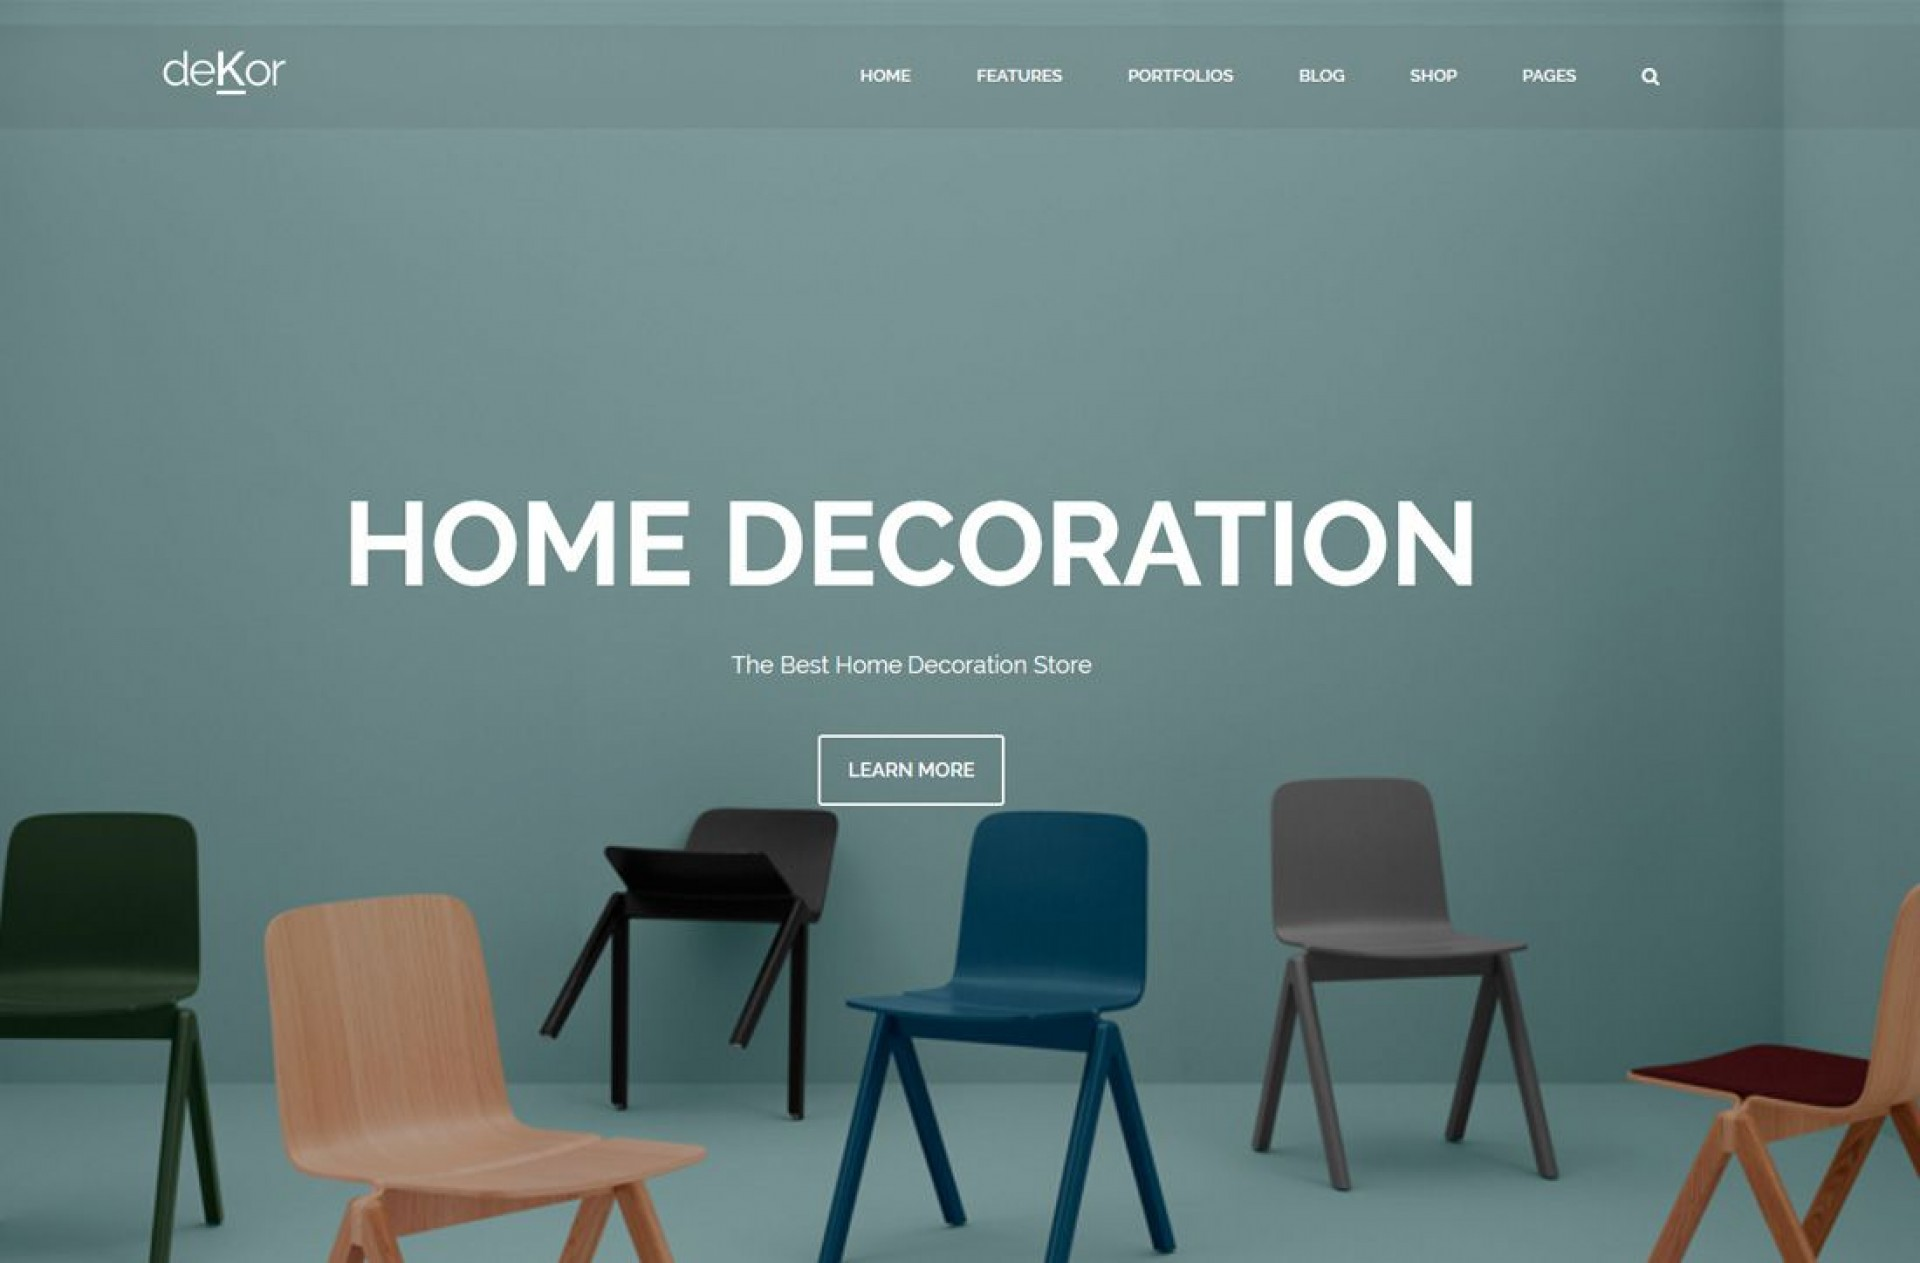 002 Top Interior Design Website Template Image  Templates Company Free Download Html1920